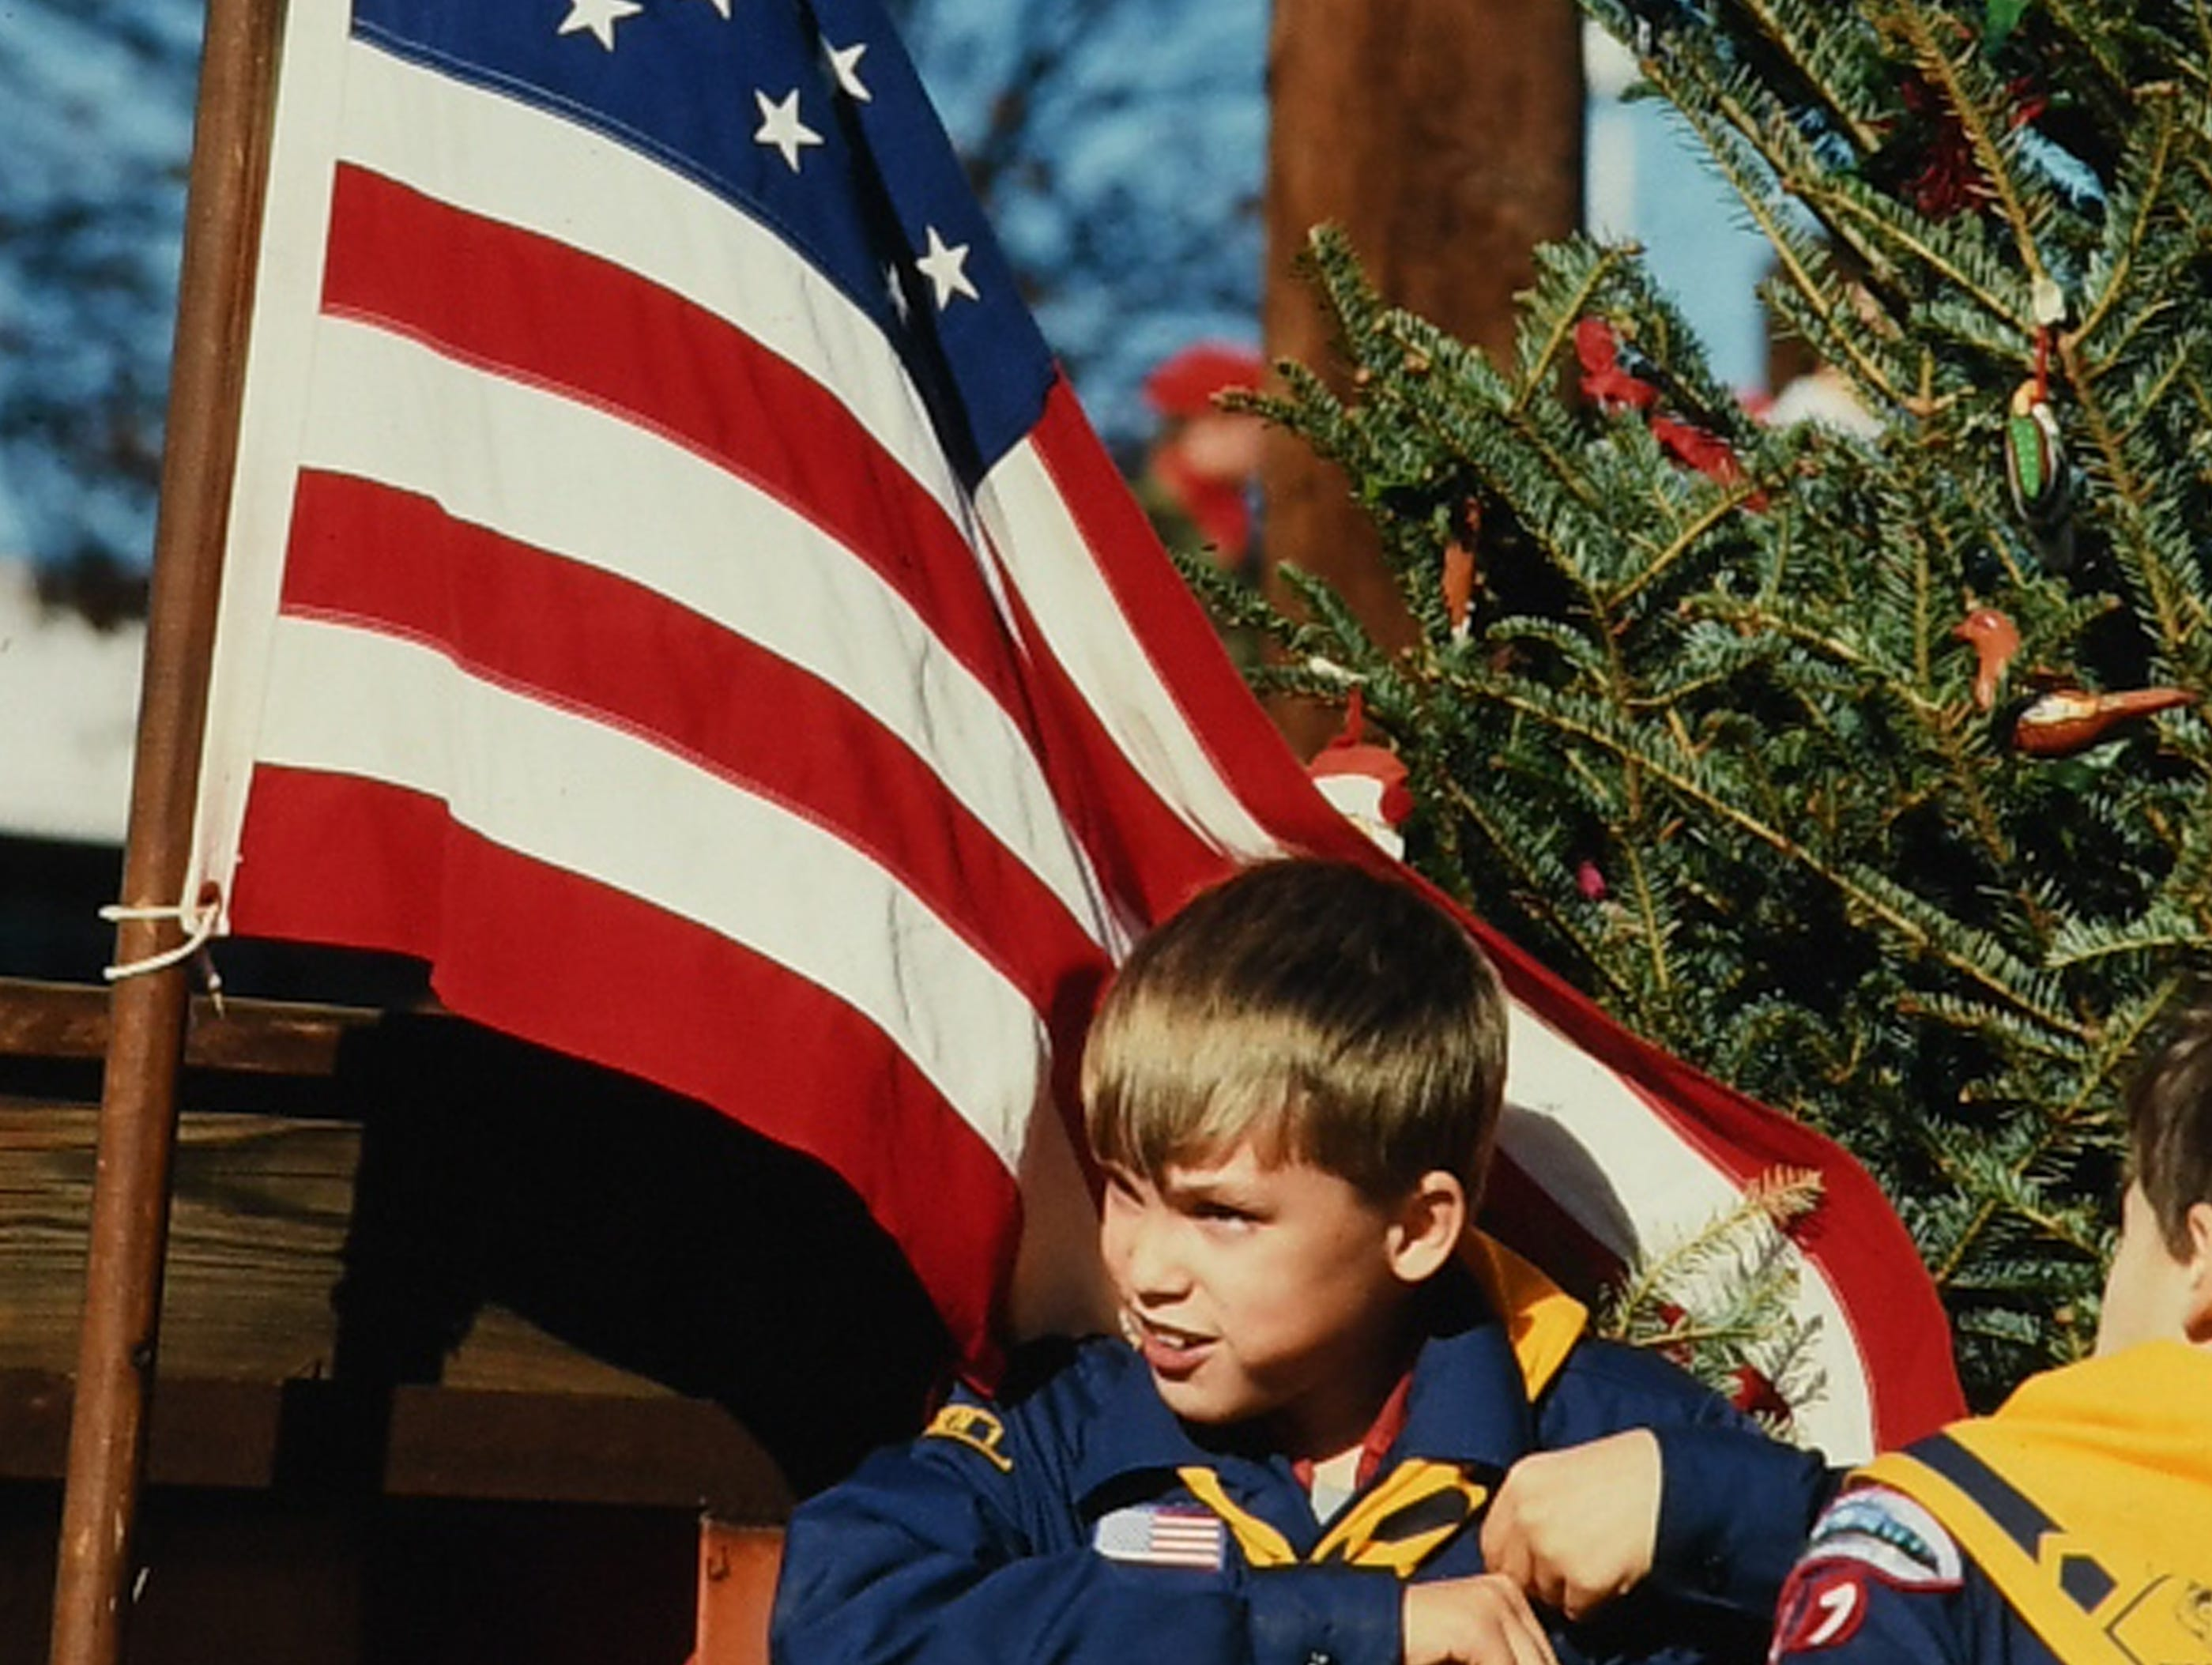 Cub Scout Pack 94 of Anderson, in the Anderson Christmas parade in December 1987 in downtown Anderson. (Patrick Wright photos)